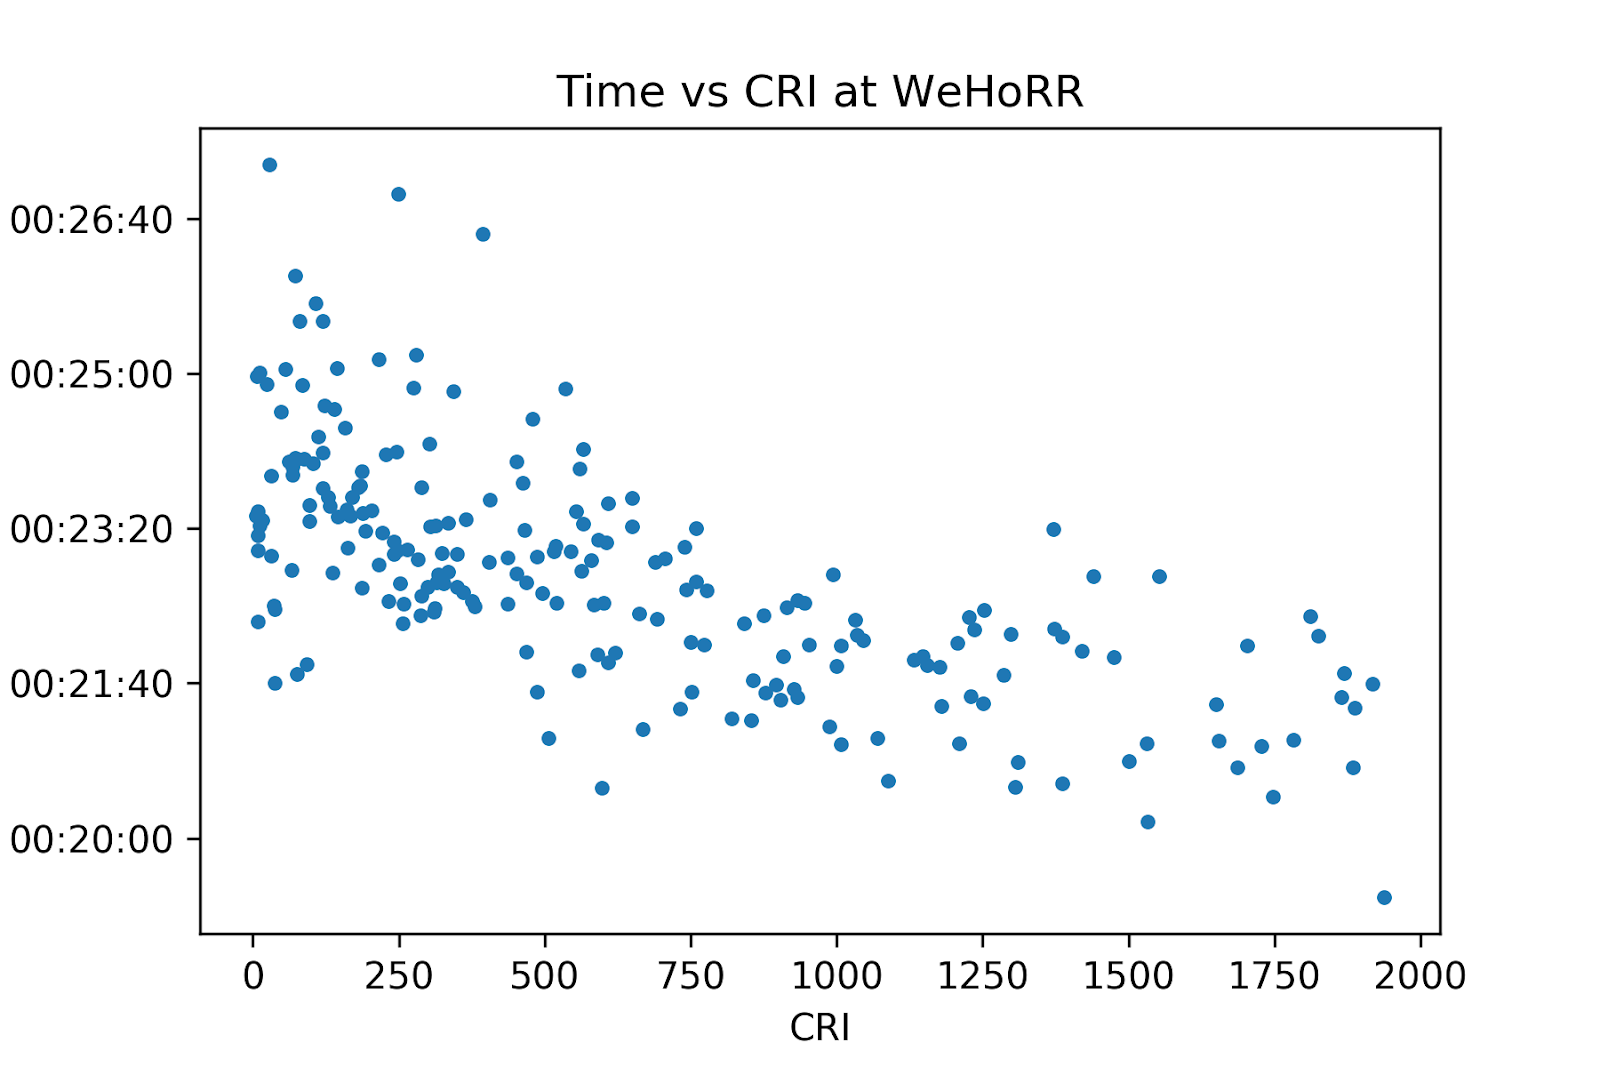 RPI vs time at WEHoRR